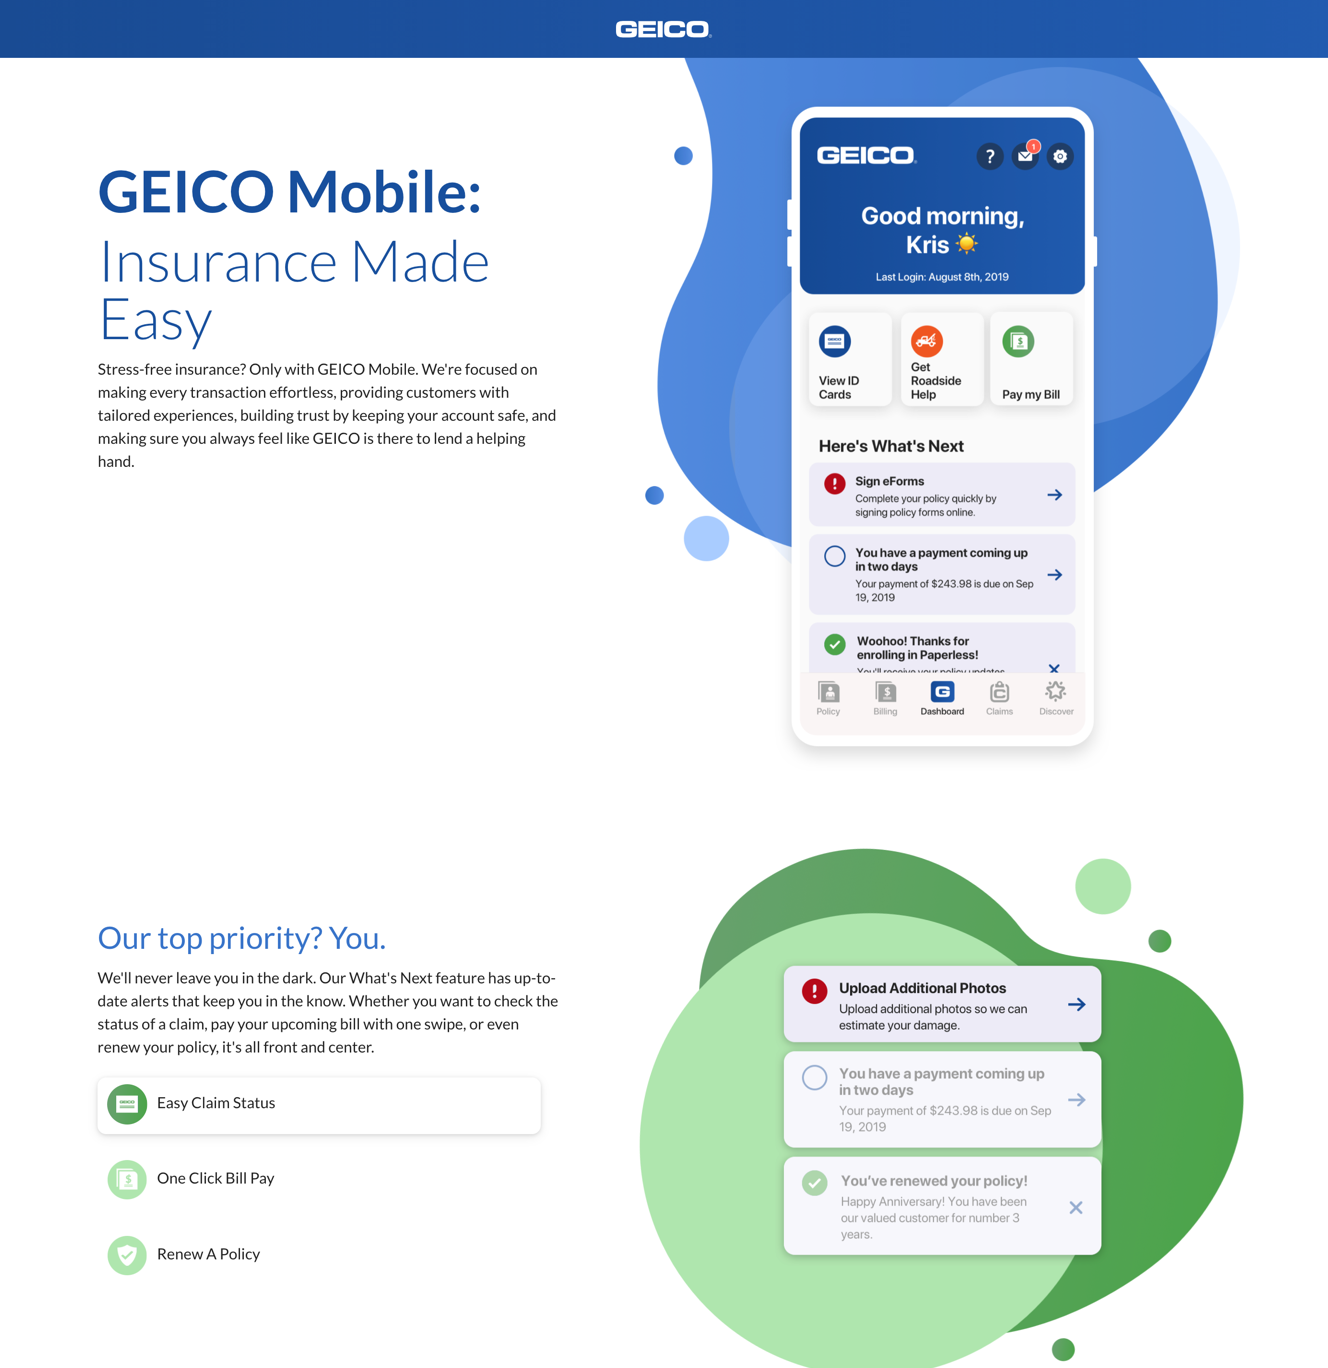 GEICO Mobile: Insurance Made Easy image